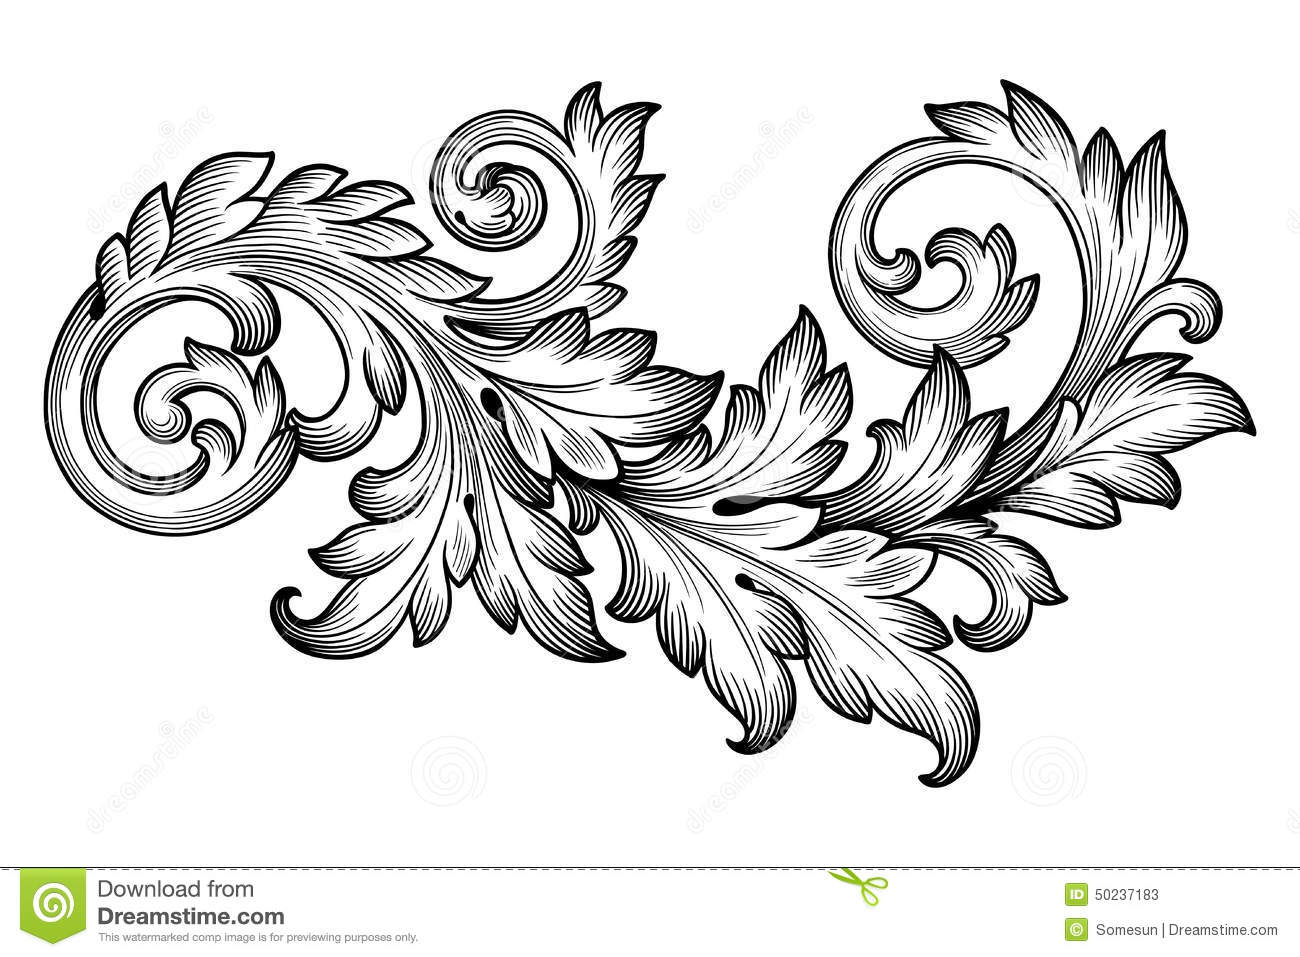 Decoration clipart baroque Pattern – Patterns & Pictures